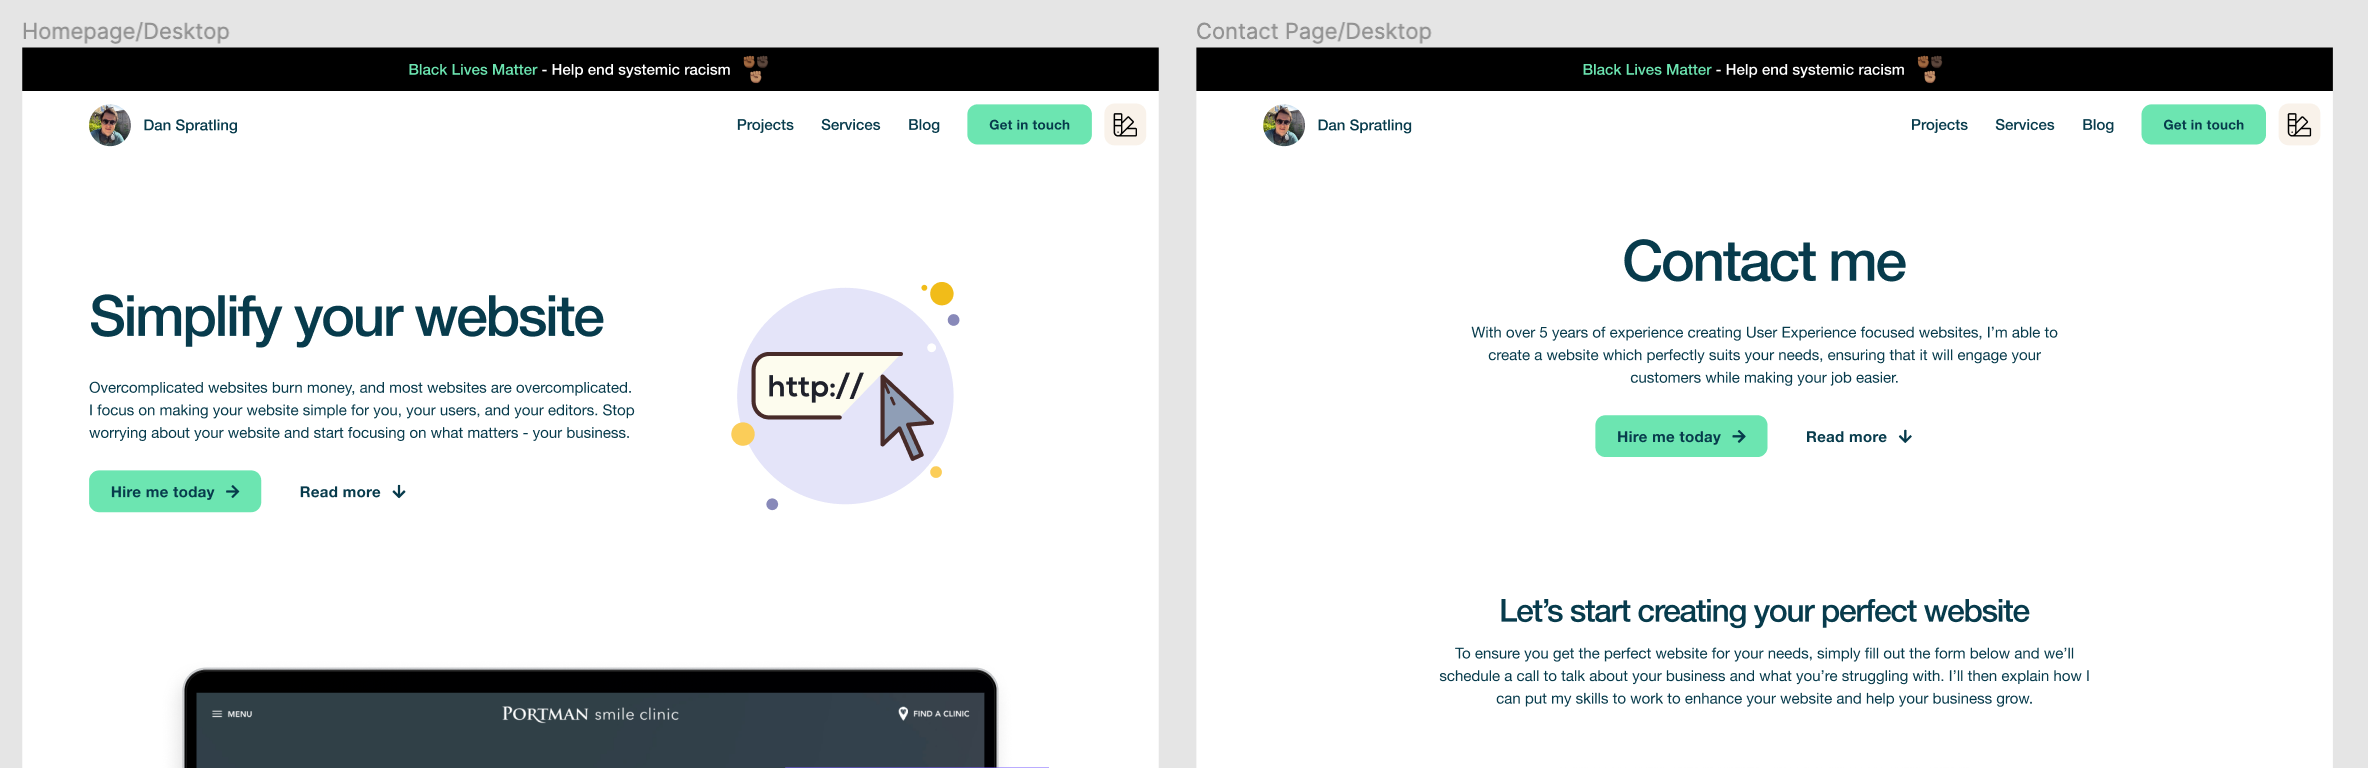 The Hero component on the homepage design (left) has been changed but because it's not created as a component in the design system, the contact page design (right) hasn't updated automatically - they are not out of sync